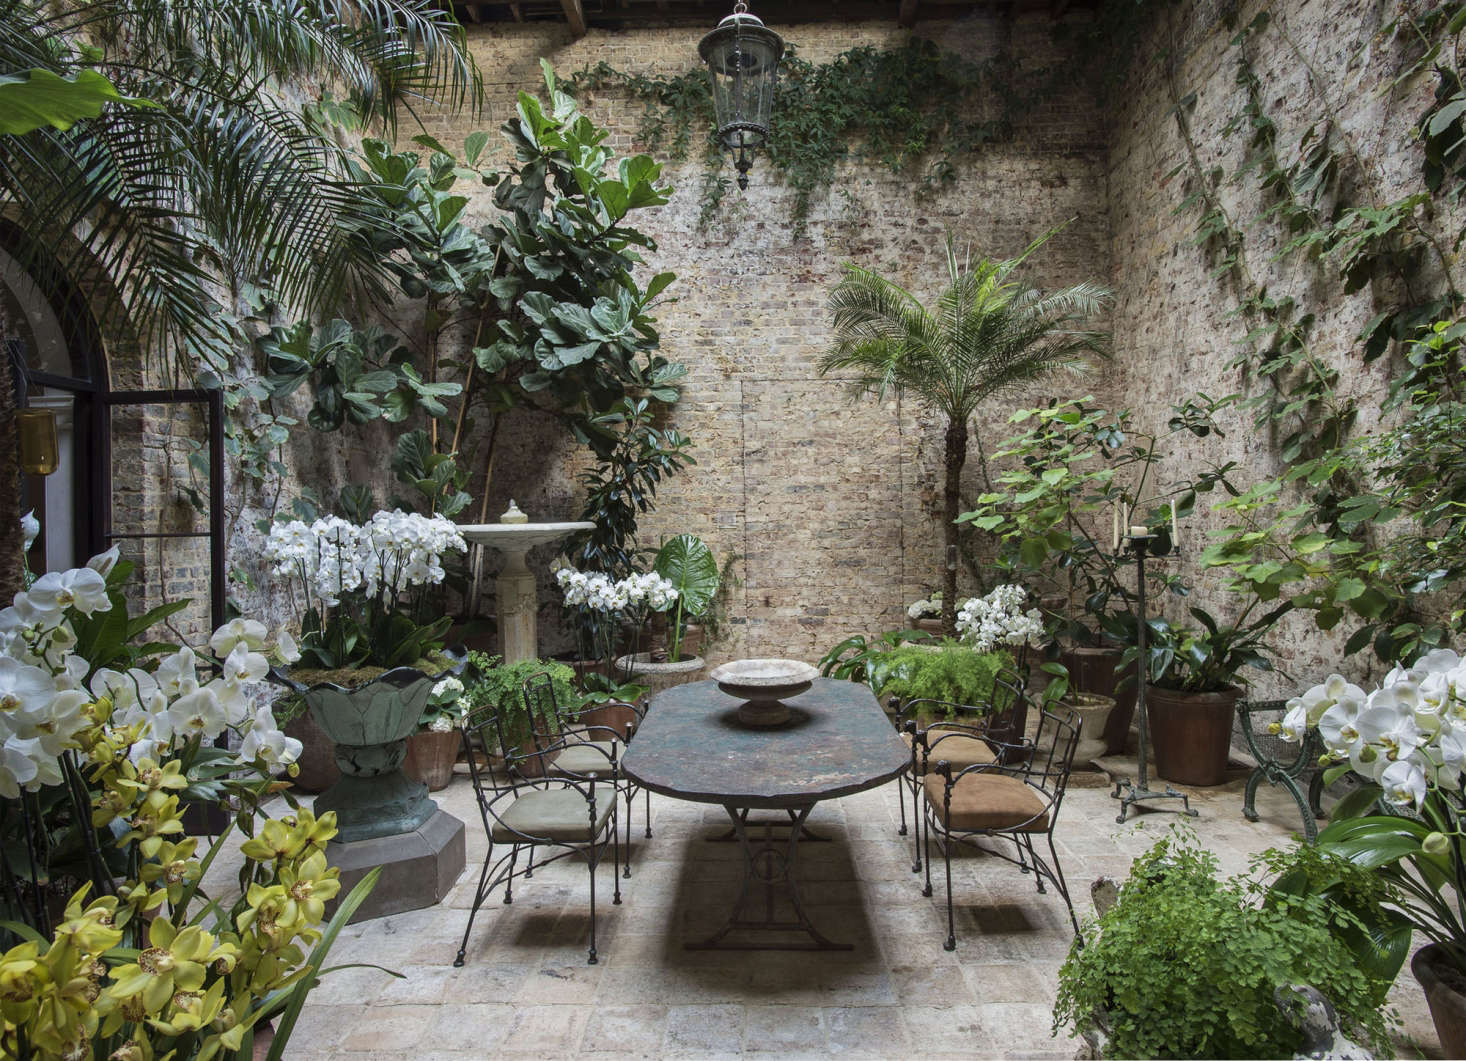 Designer Rose Uniacke London designer fills her London conservatory with orchids. See more in Among the Orchids: Designer Rose Uniacke at Home in London. Photograph by Matthew Williams.